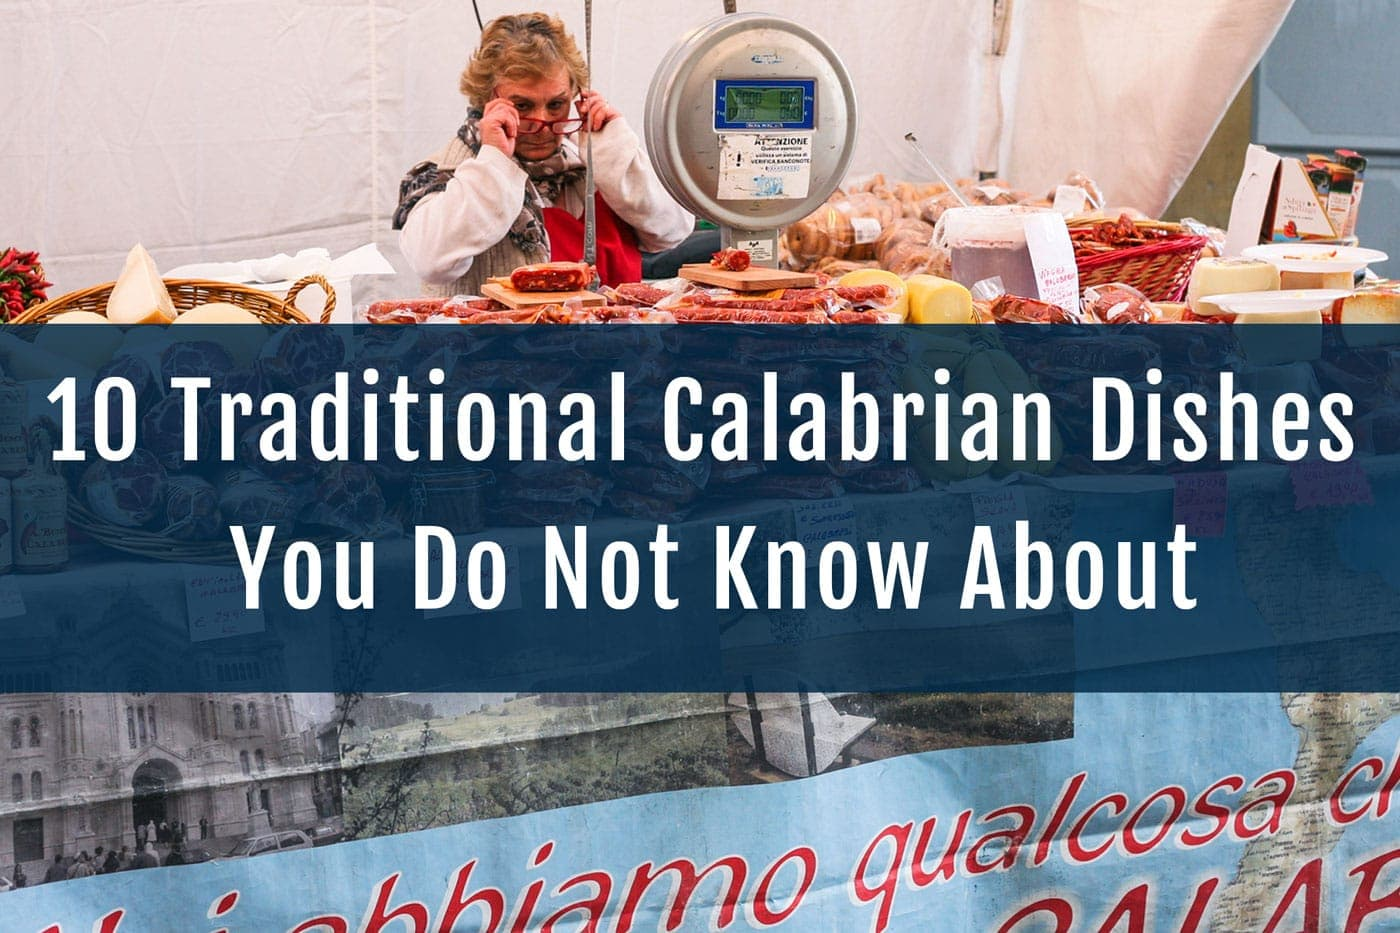 10 Traditional Calabrian Dishes You Do Not Know About